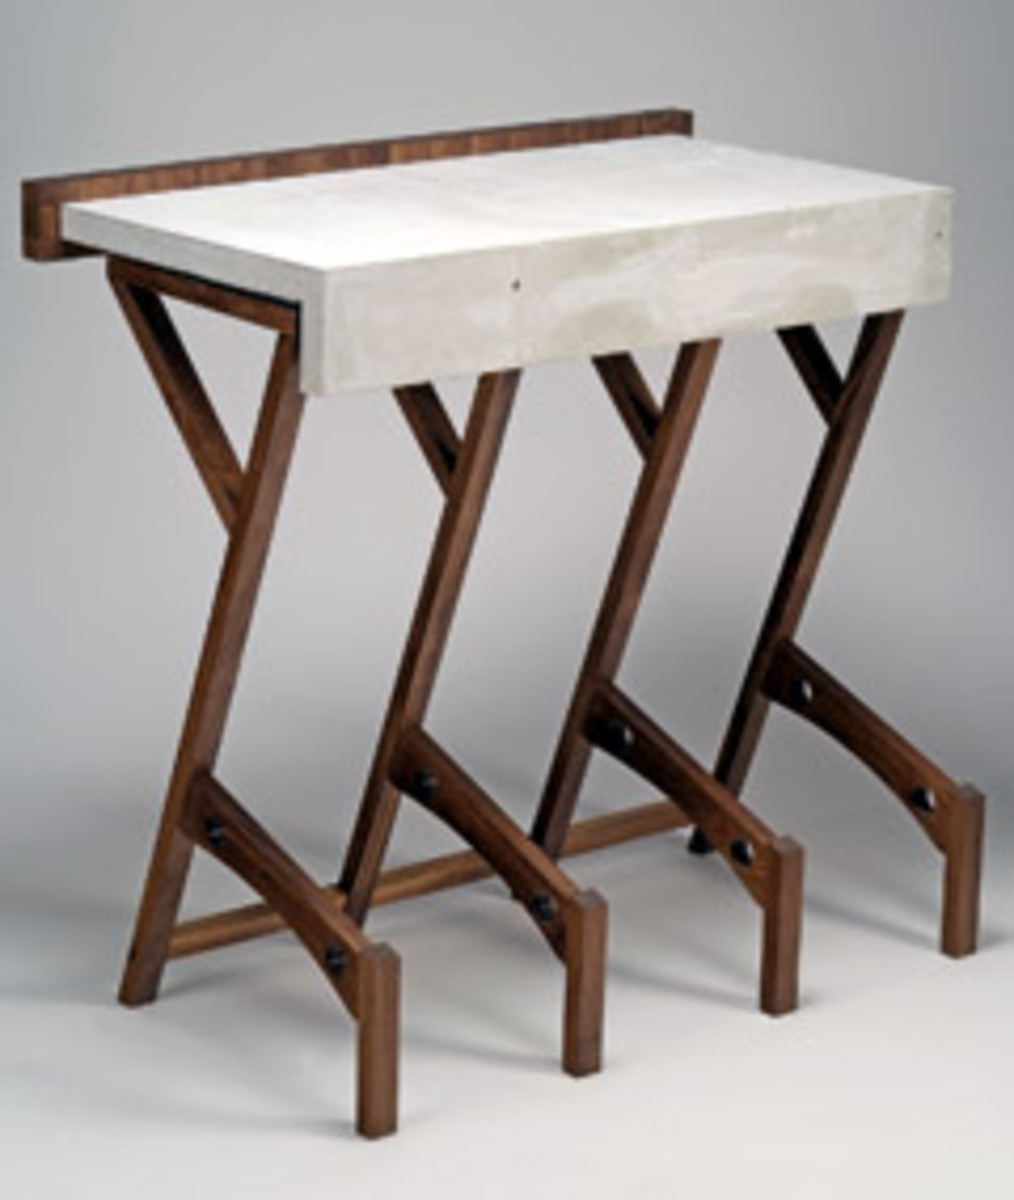 Price's table, made as a student at Maine College of Art.